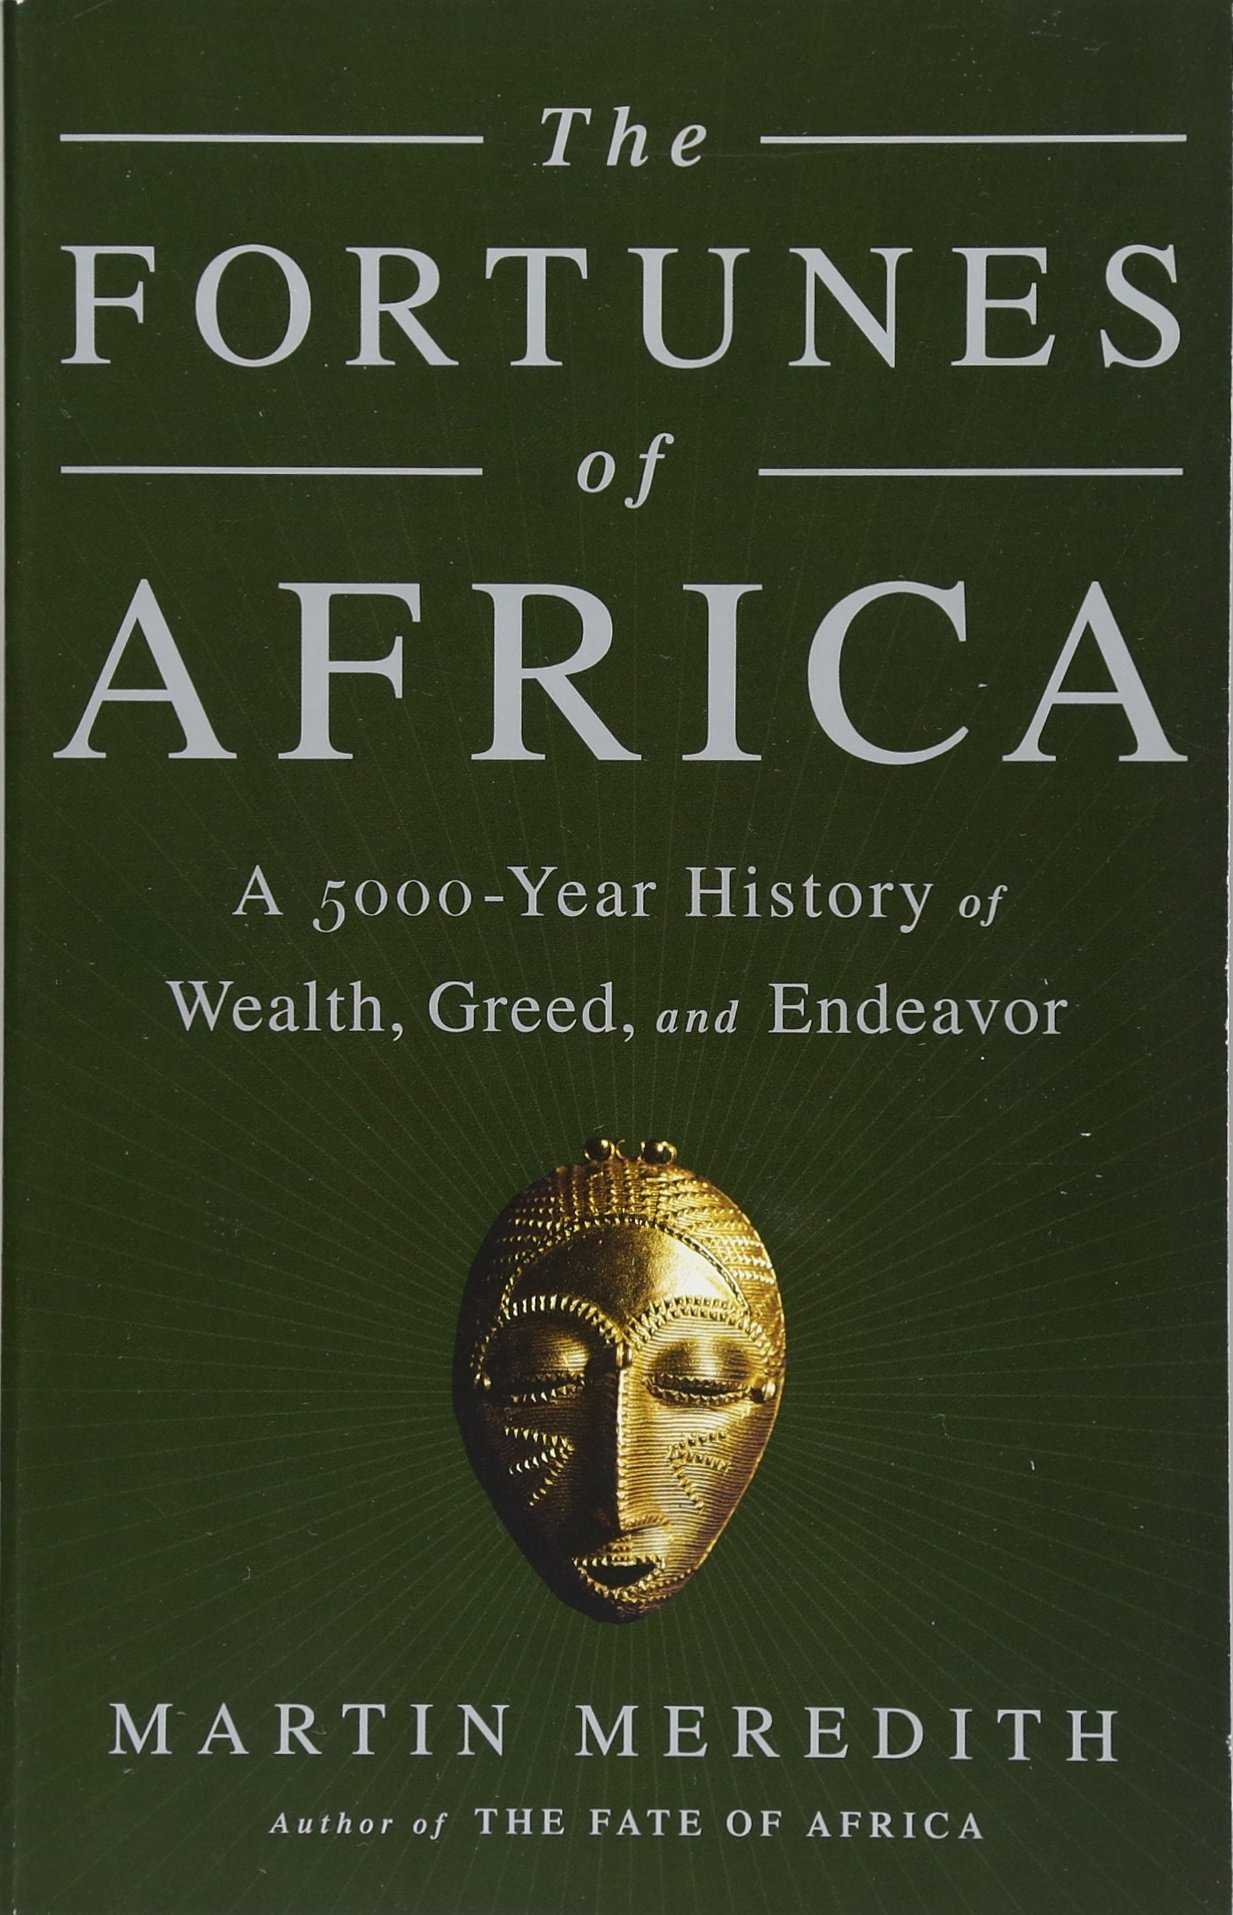 The Fortunes of Africa: A 5000-Year History of Wealth, Greed, and Endeavor: Martin  Meredith: 9781610396356: Amazon.com: Books